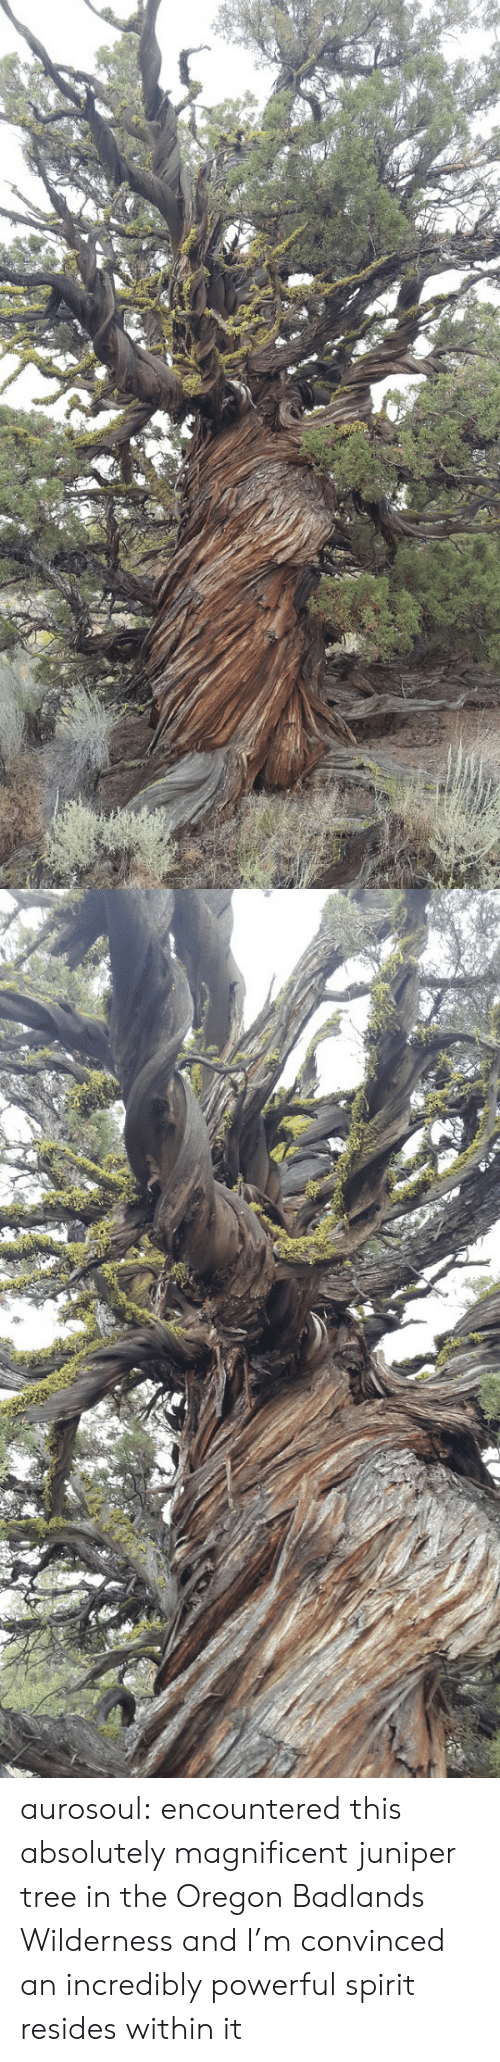 Oregon: aurosoul: encountered this absolutely magnificent juniper tree in the Oregon Badlands Wilderness and I'm convinced an incredibly powerful spirit resides within it